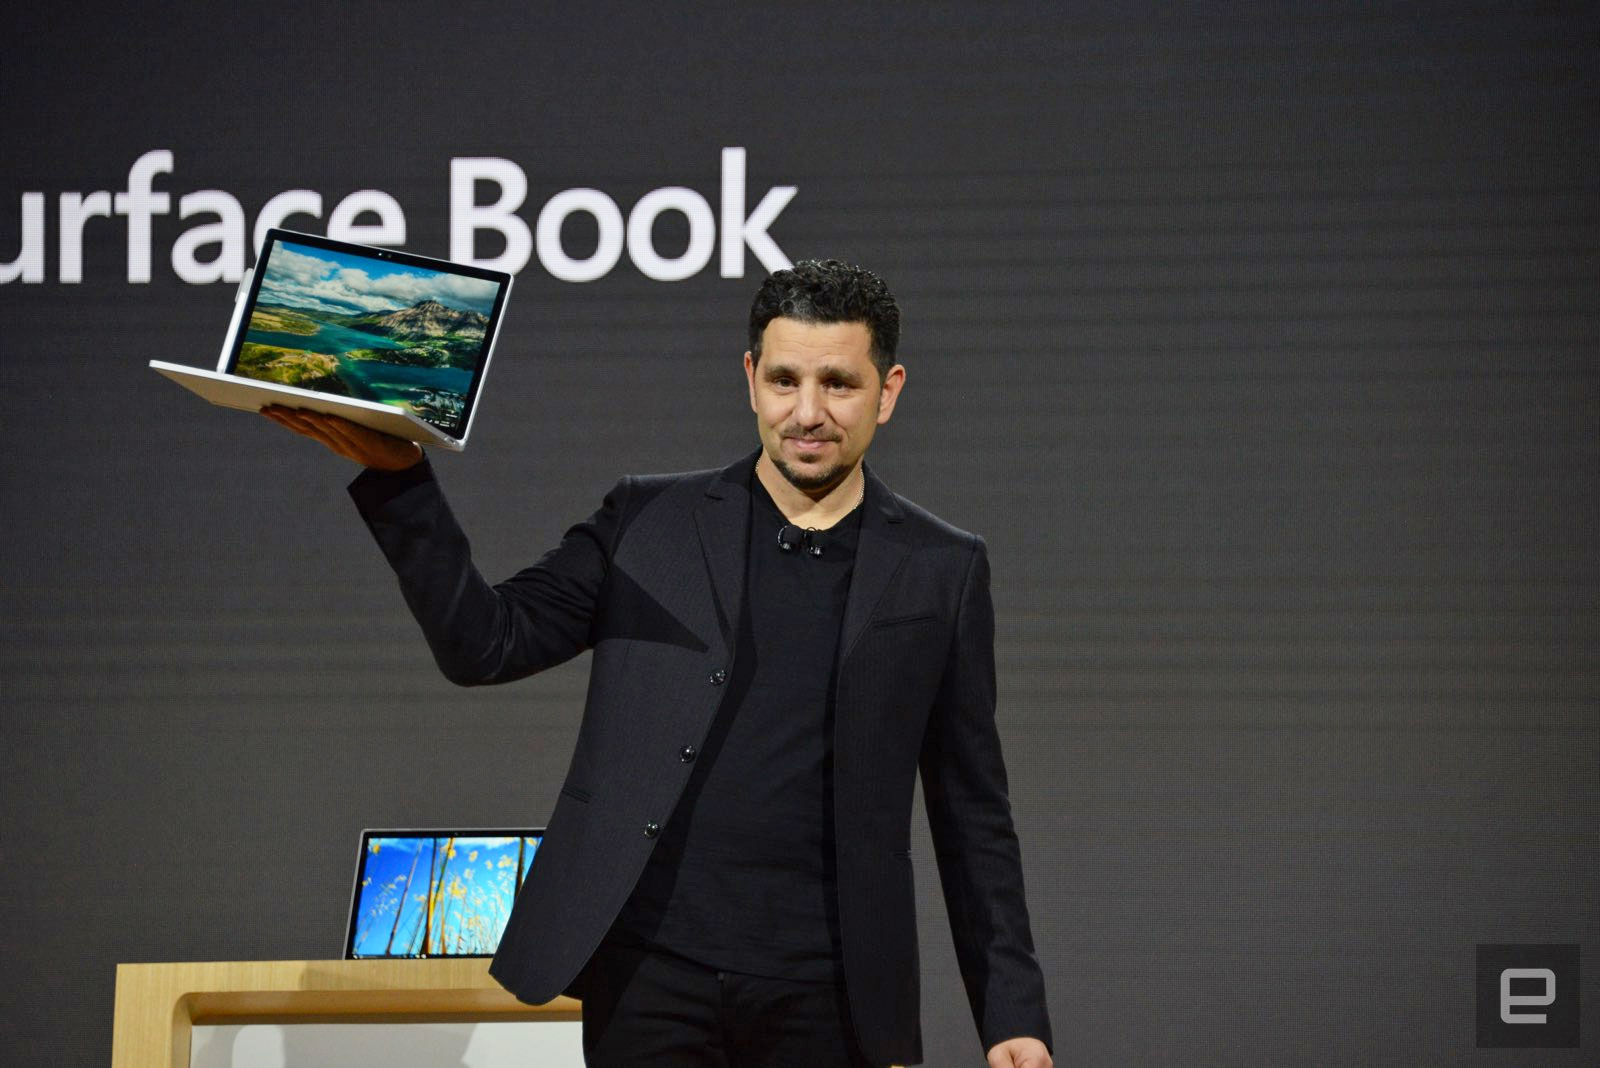 Microsoft's Surface Book i7